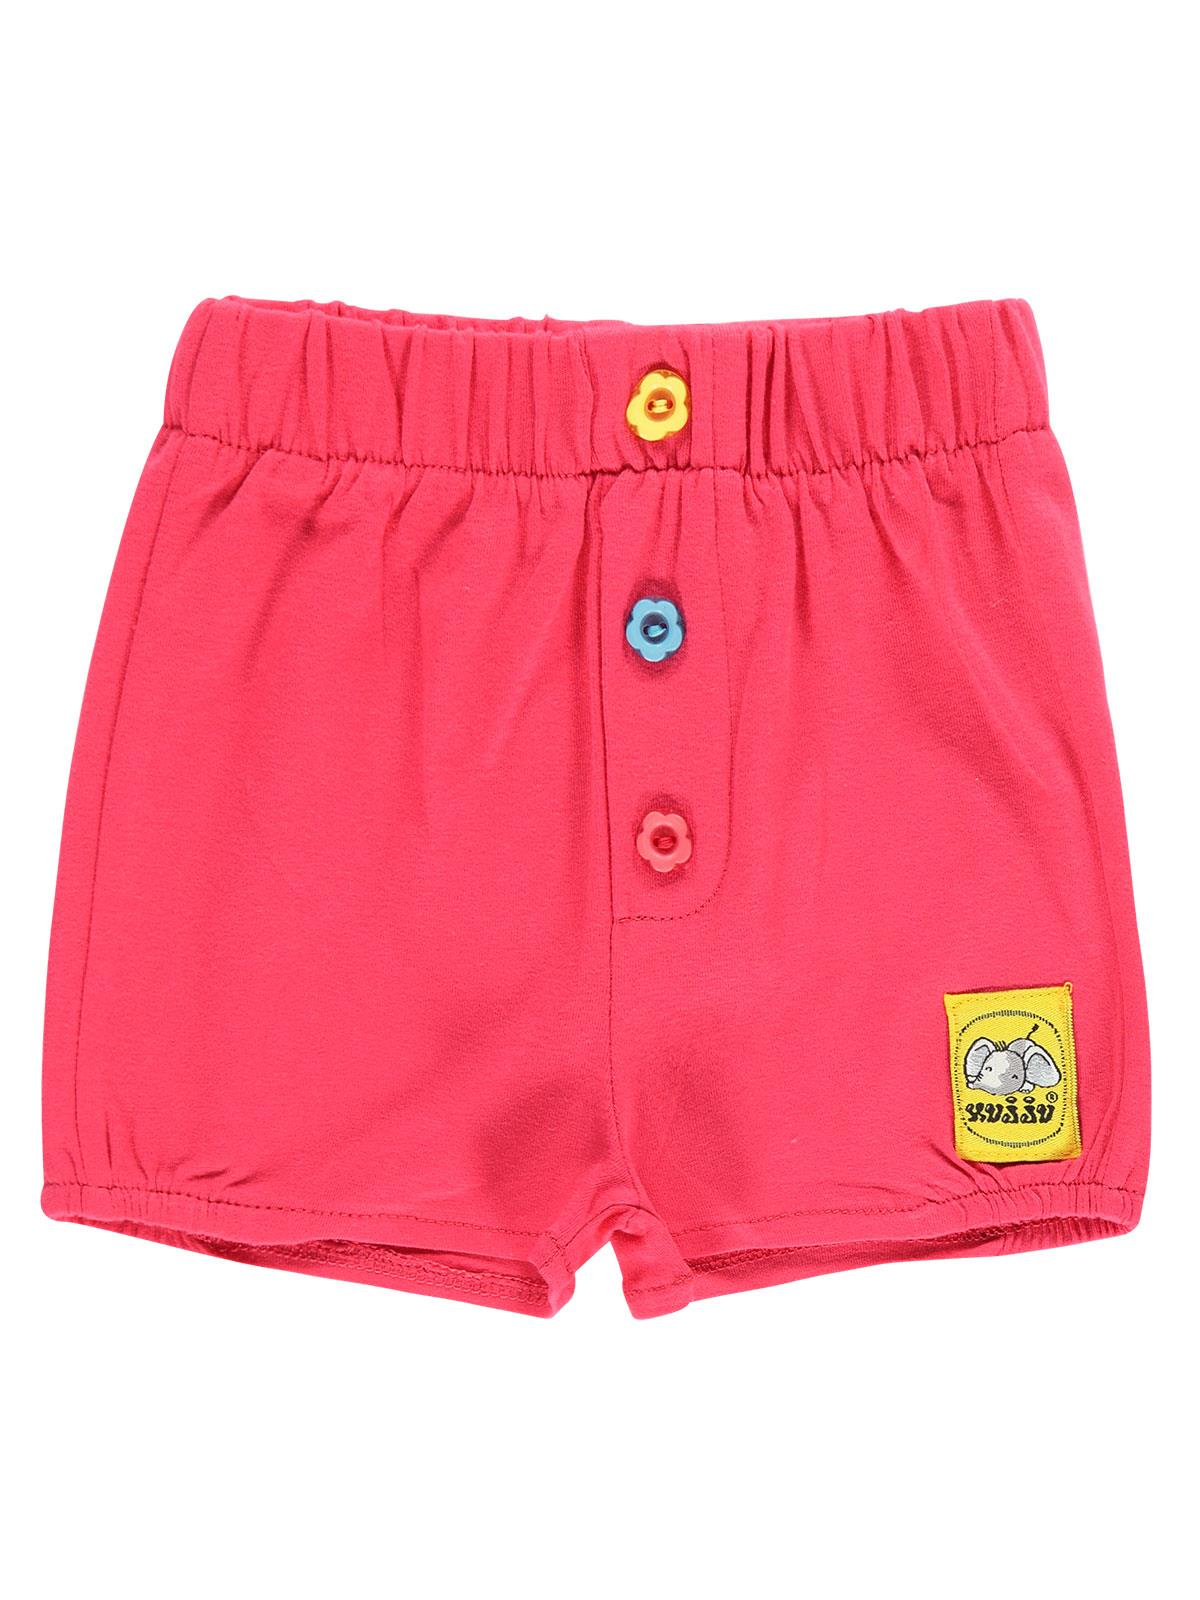 Summer Clothes Product Fashion Colorful Comfortable Stylish Civil Baby Girl Shorts 6-18 Months 38587 A817Y01